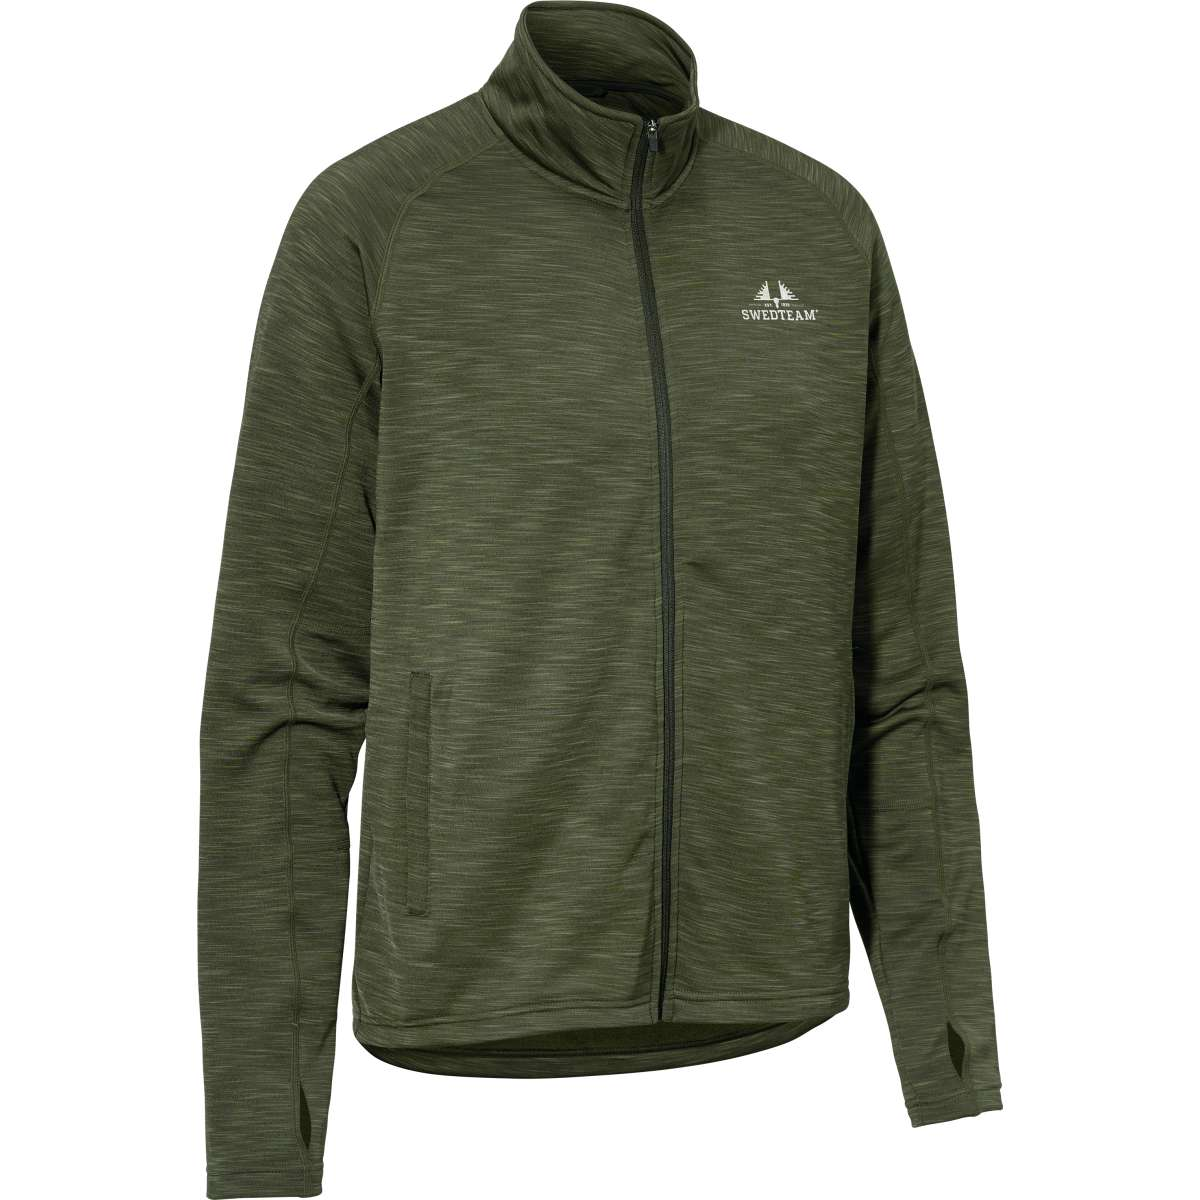 Swedteam Sweater Ultra Light Full Zip